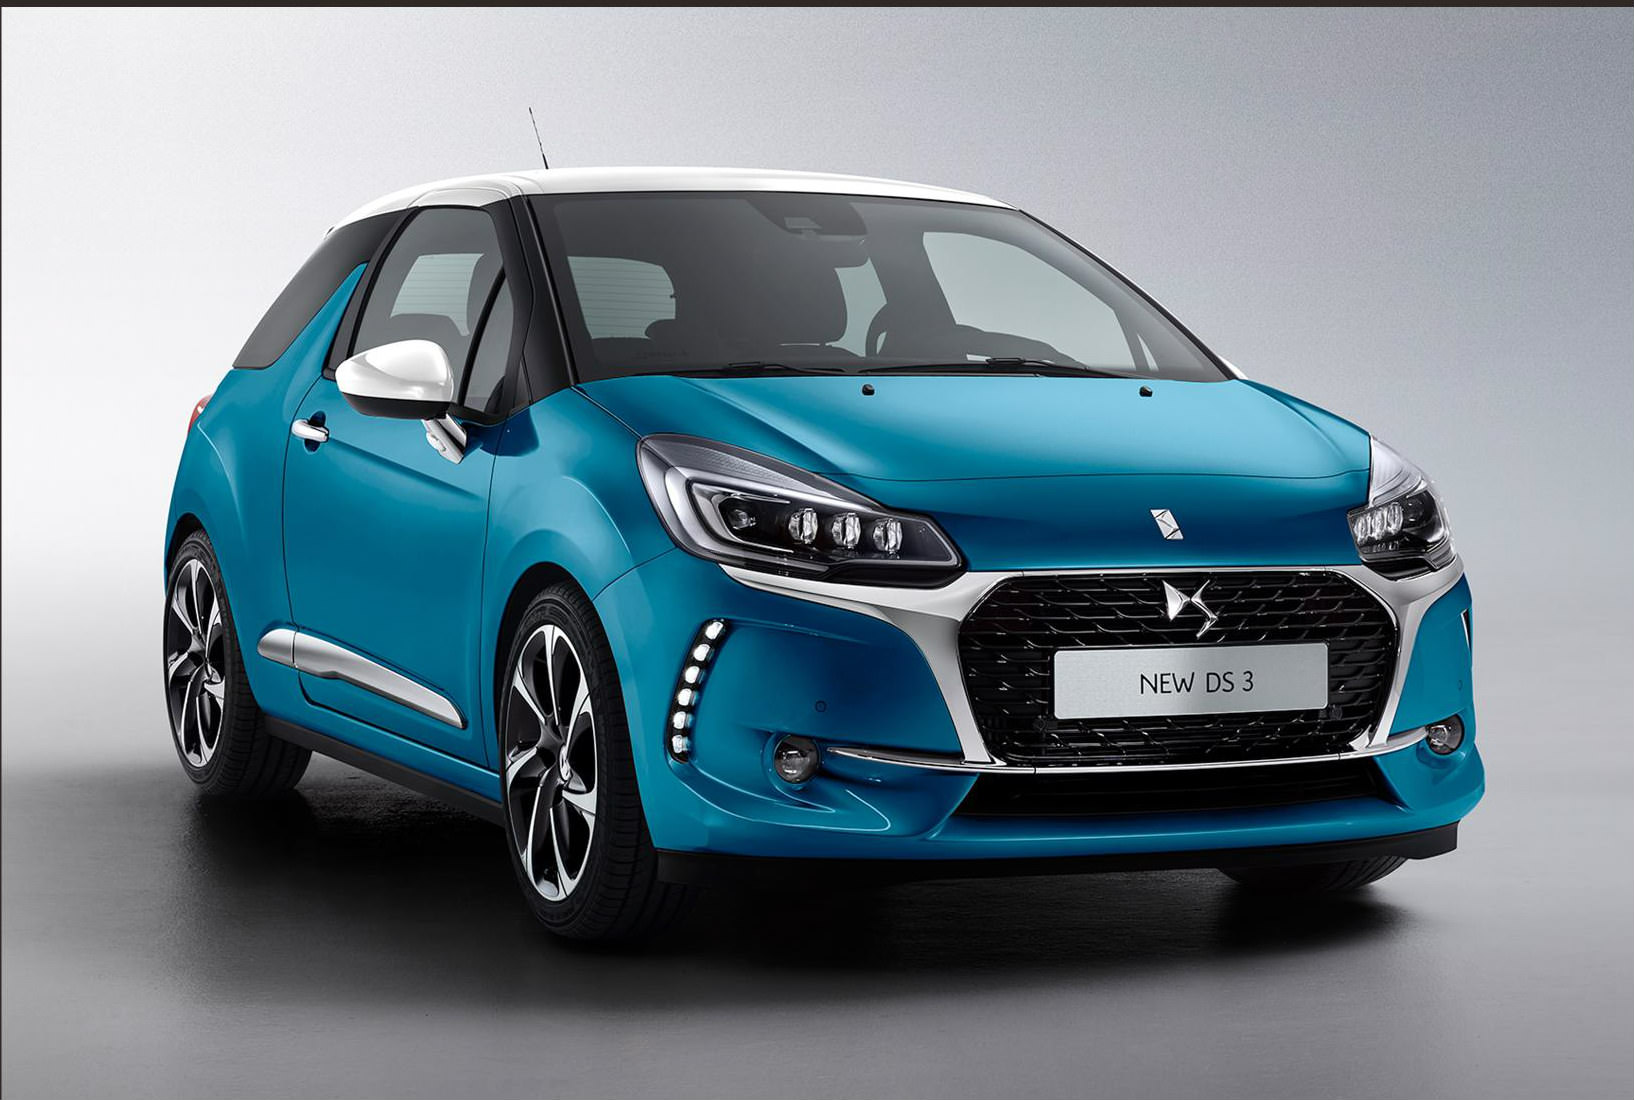 image of a blue ds 3 car exterior